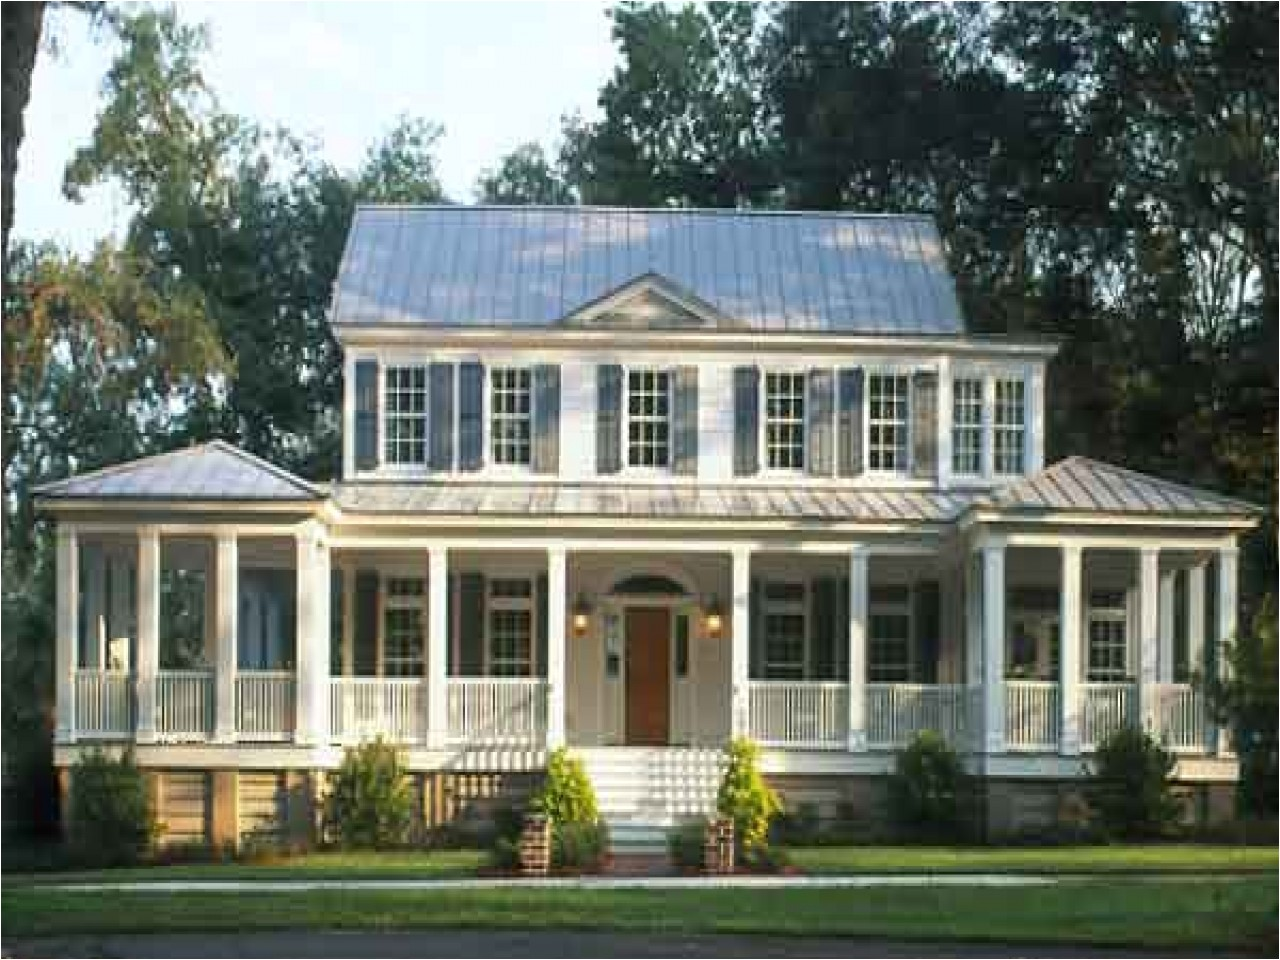 0627ecdd5c134032 house plans southern living magazine southern living house plans with porches